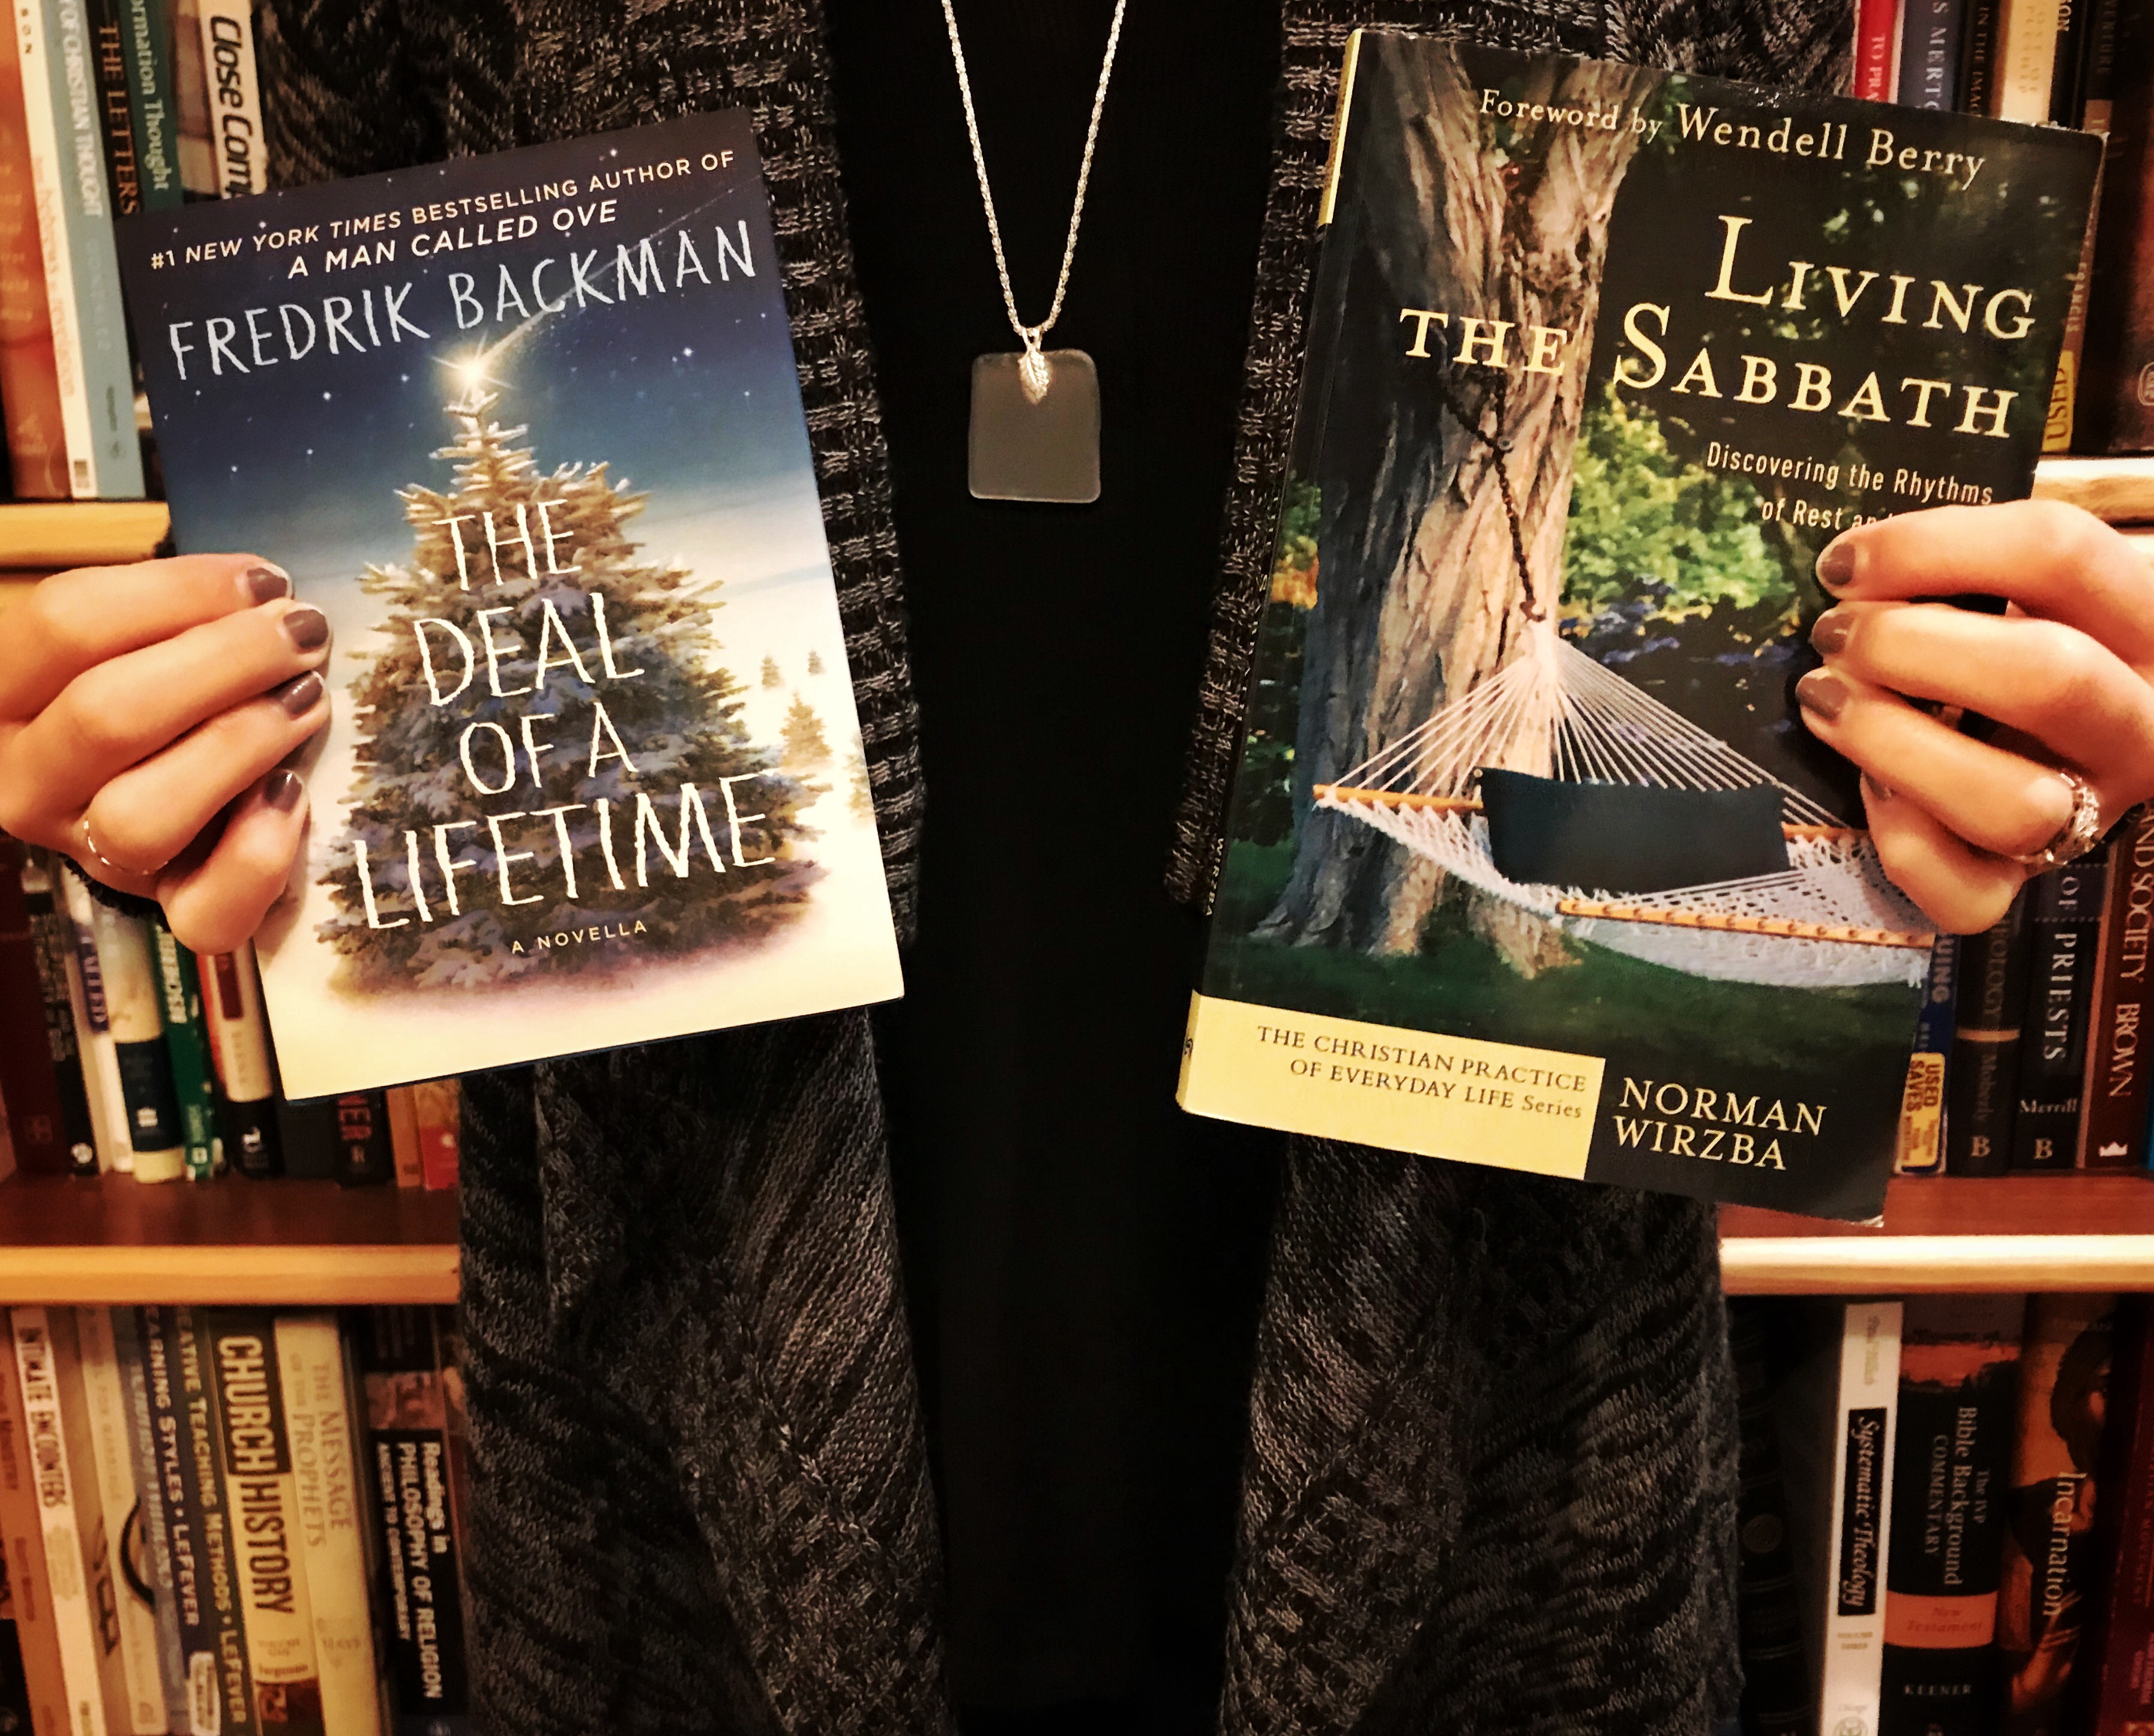 Book Pairing: Living the Sabbath and The Deal of a Lifetime